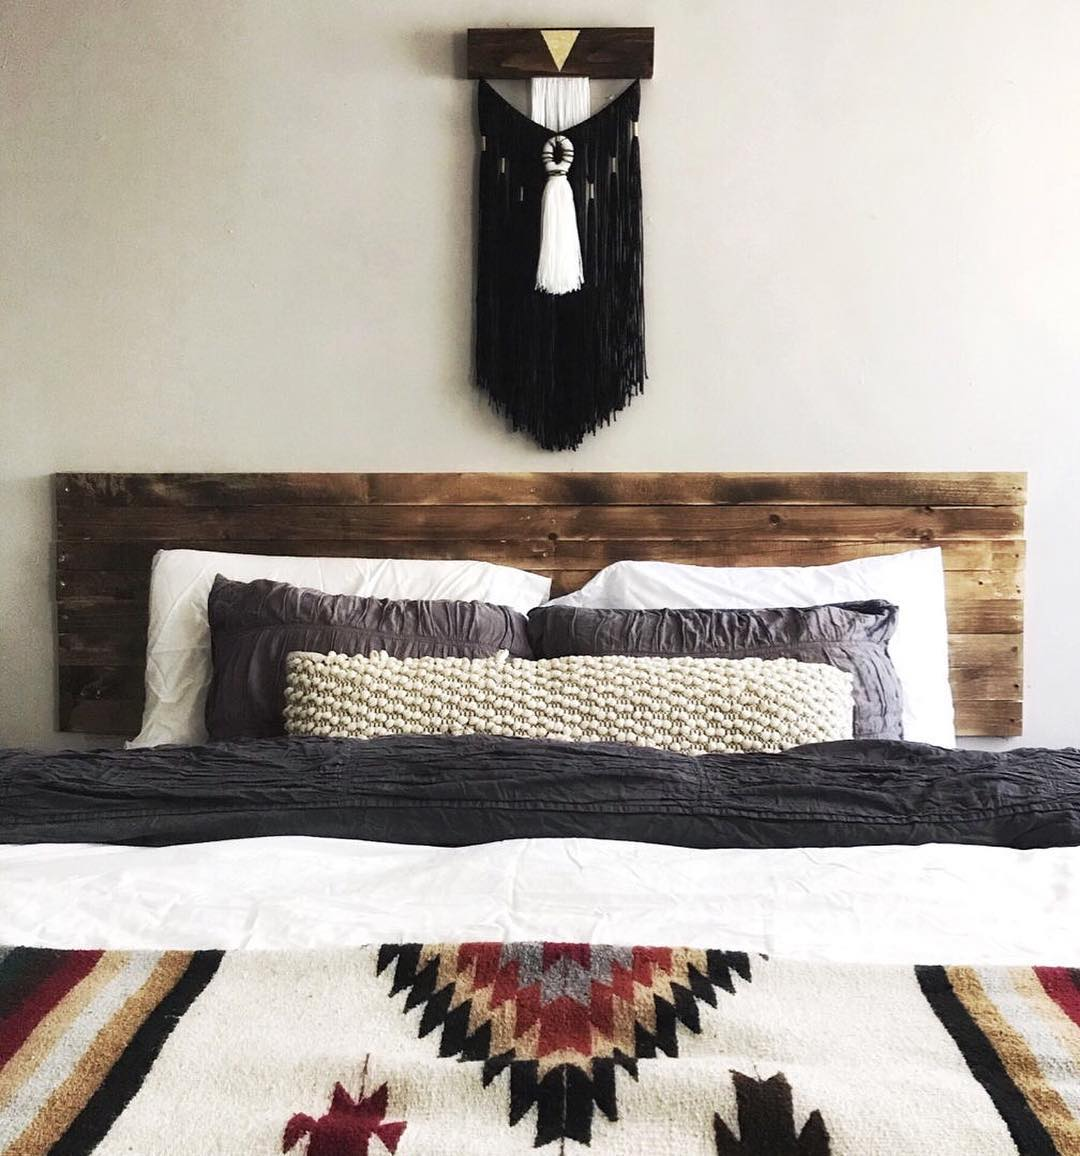 The Cora by Timber and Torch, Wall Hangings at Private Residence, Newport Beach, CA